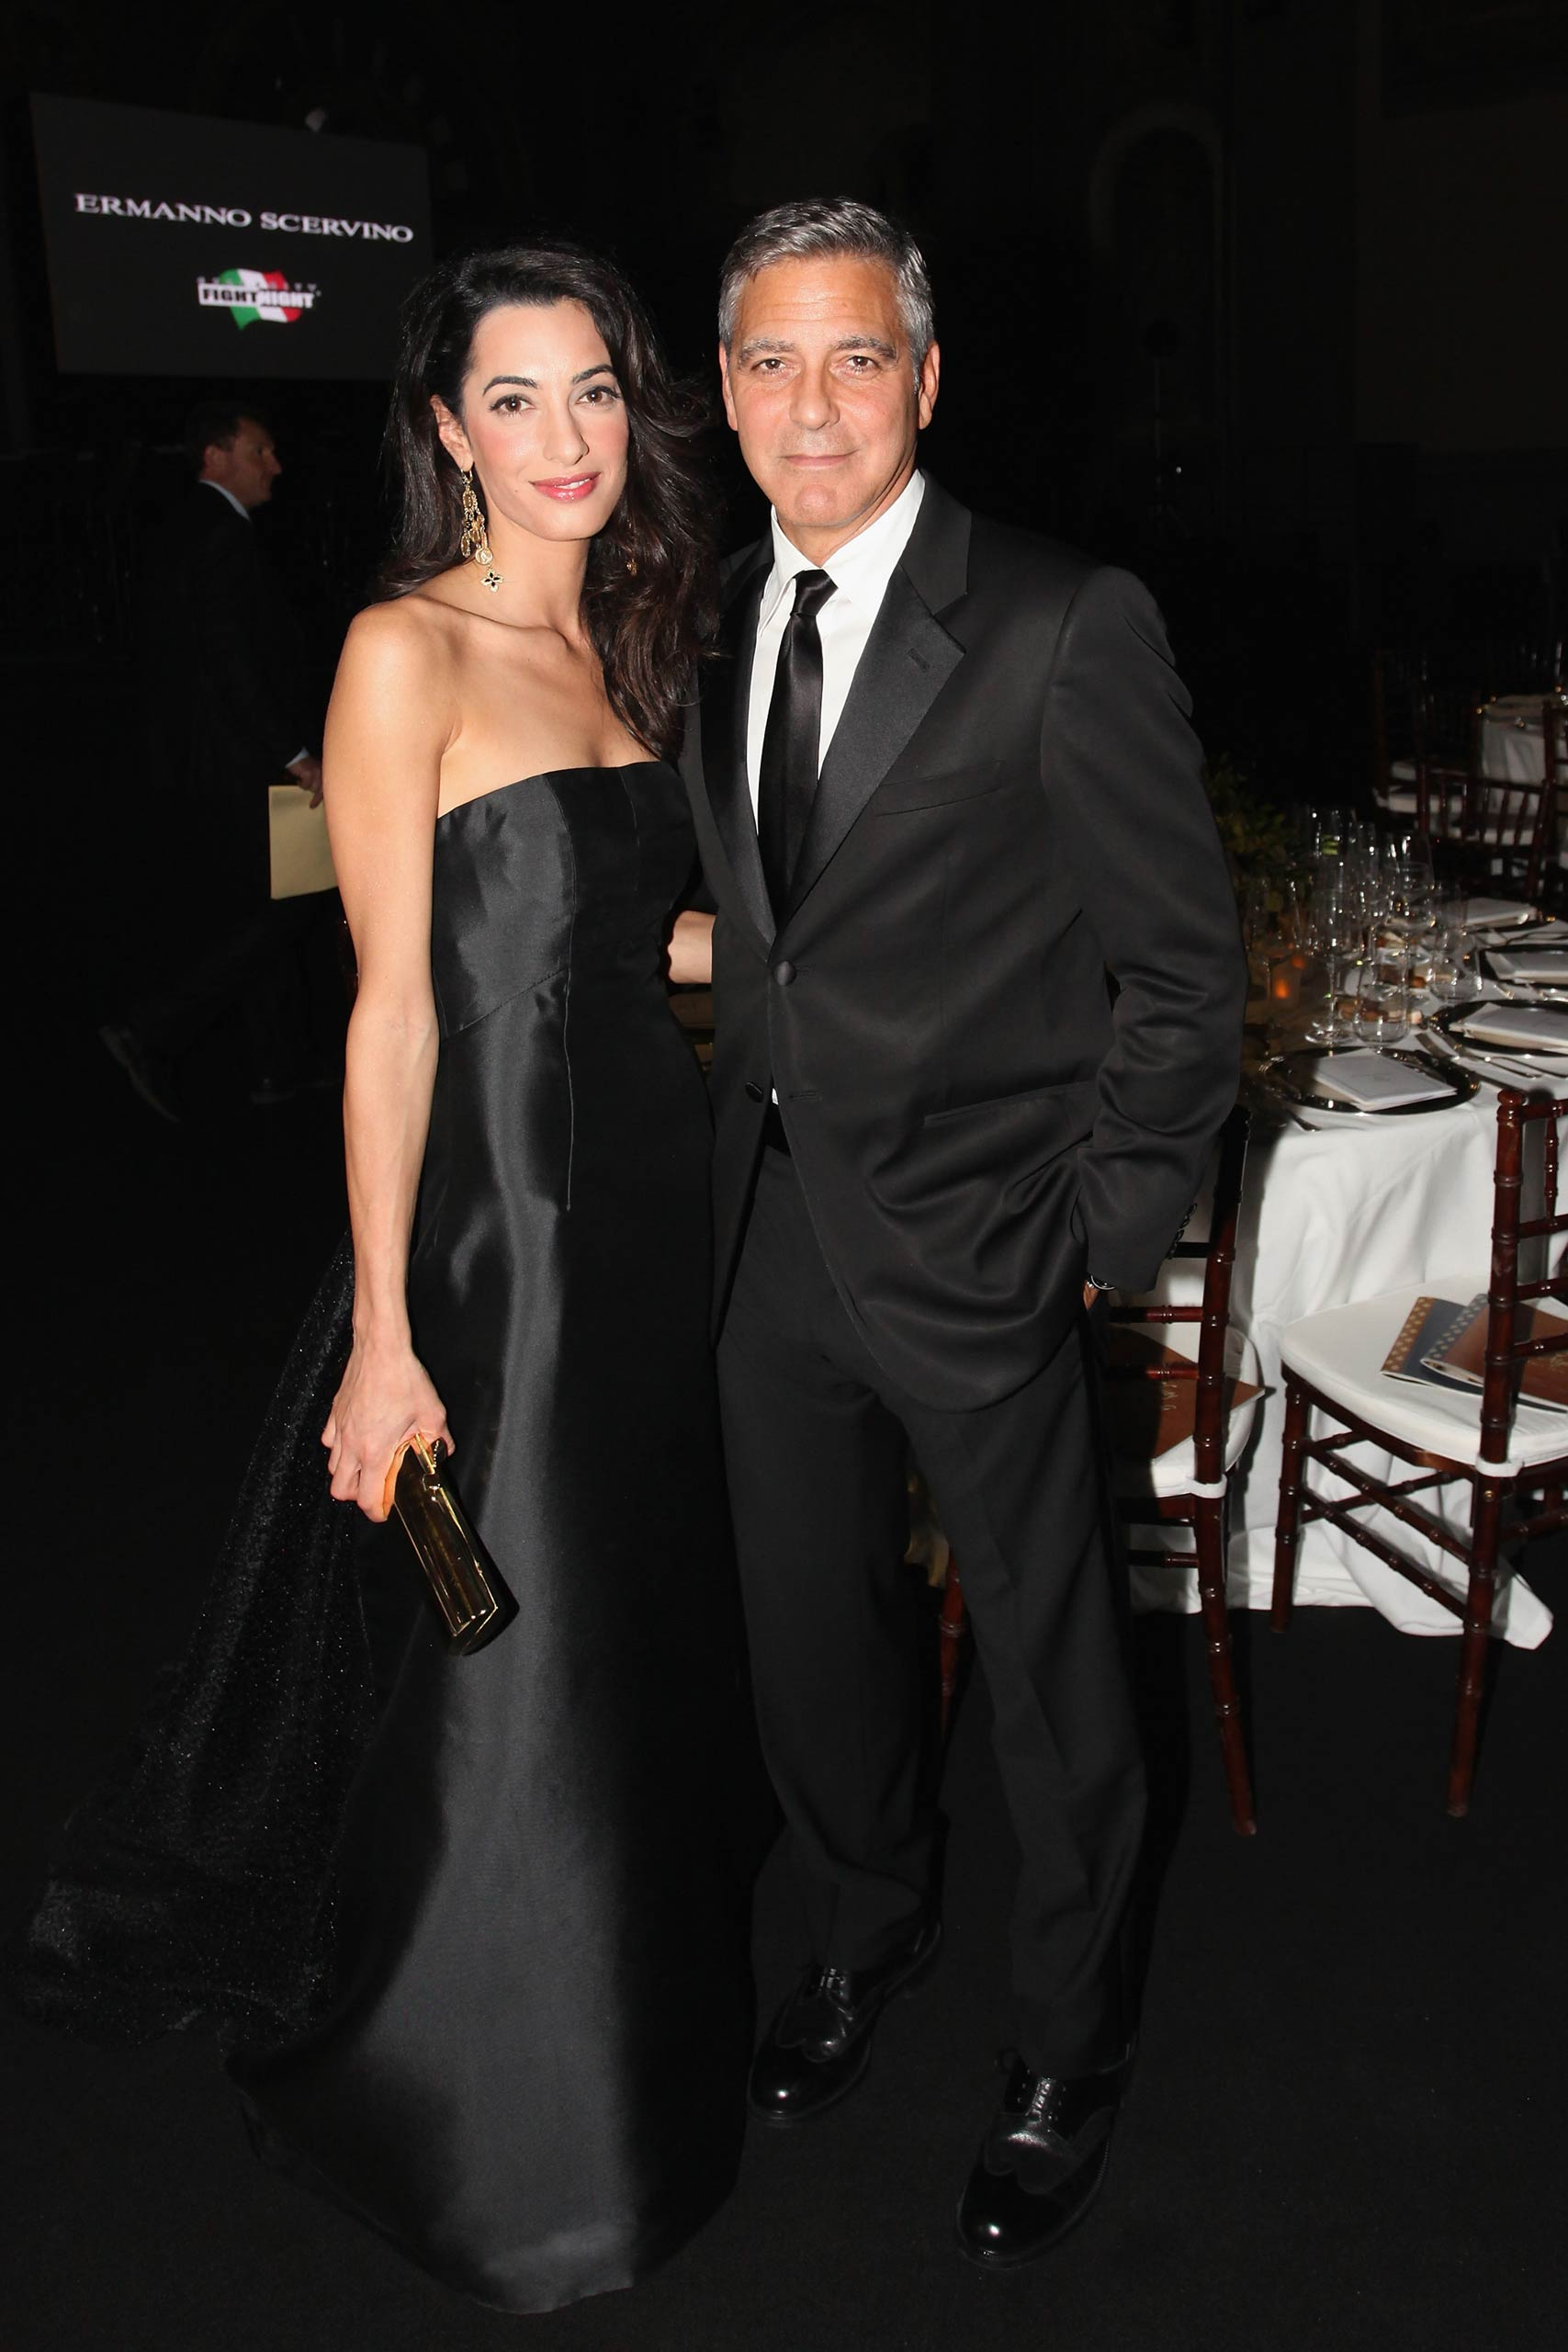 Amal Alamuddin and George Clooney attend the Celebrity Fight Night In Italy benefitting The Andrea Bocelli Foundation and The Muhammad Ali Parkinson Center Gala in Florence, Italy, on Sept. 7, 2014.